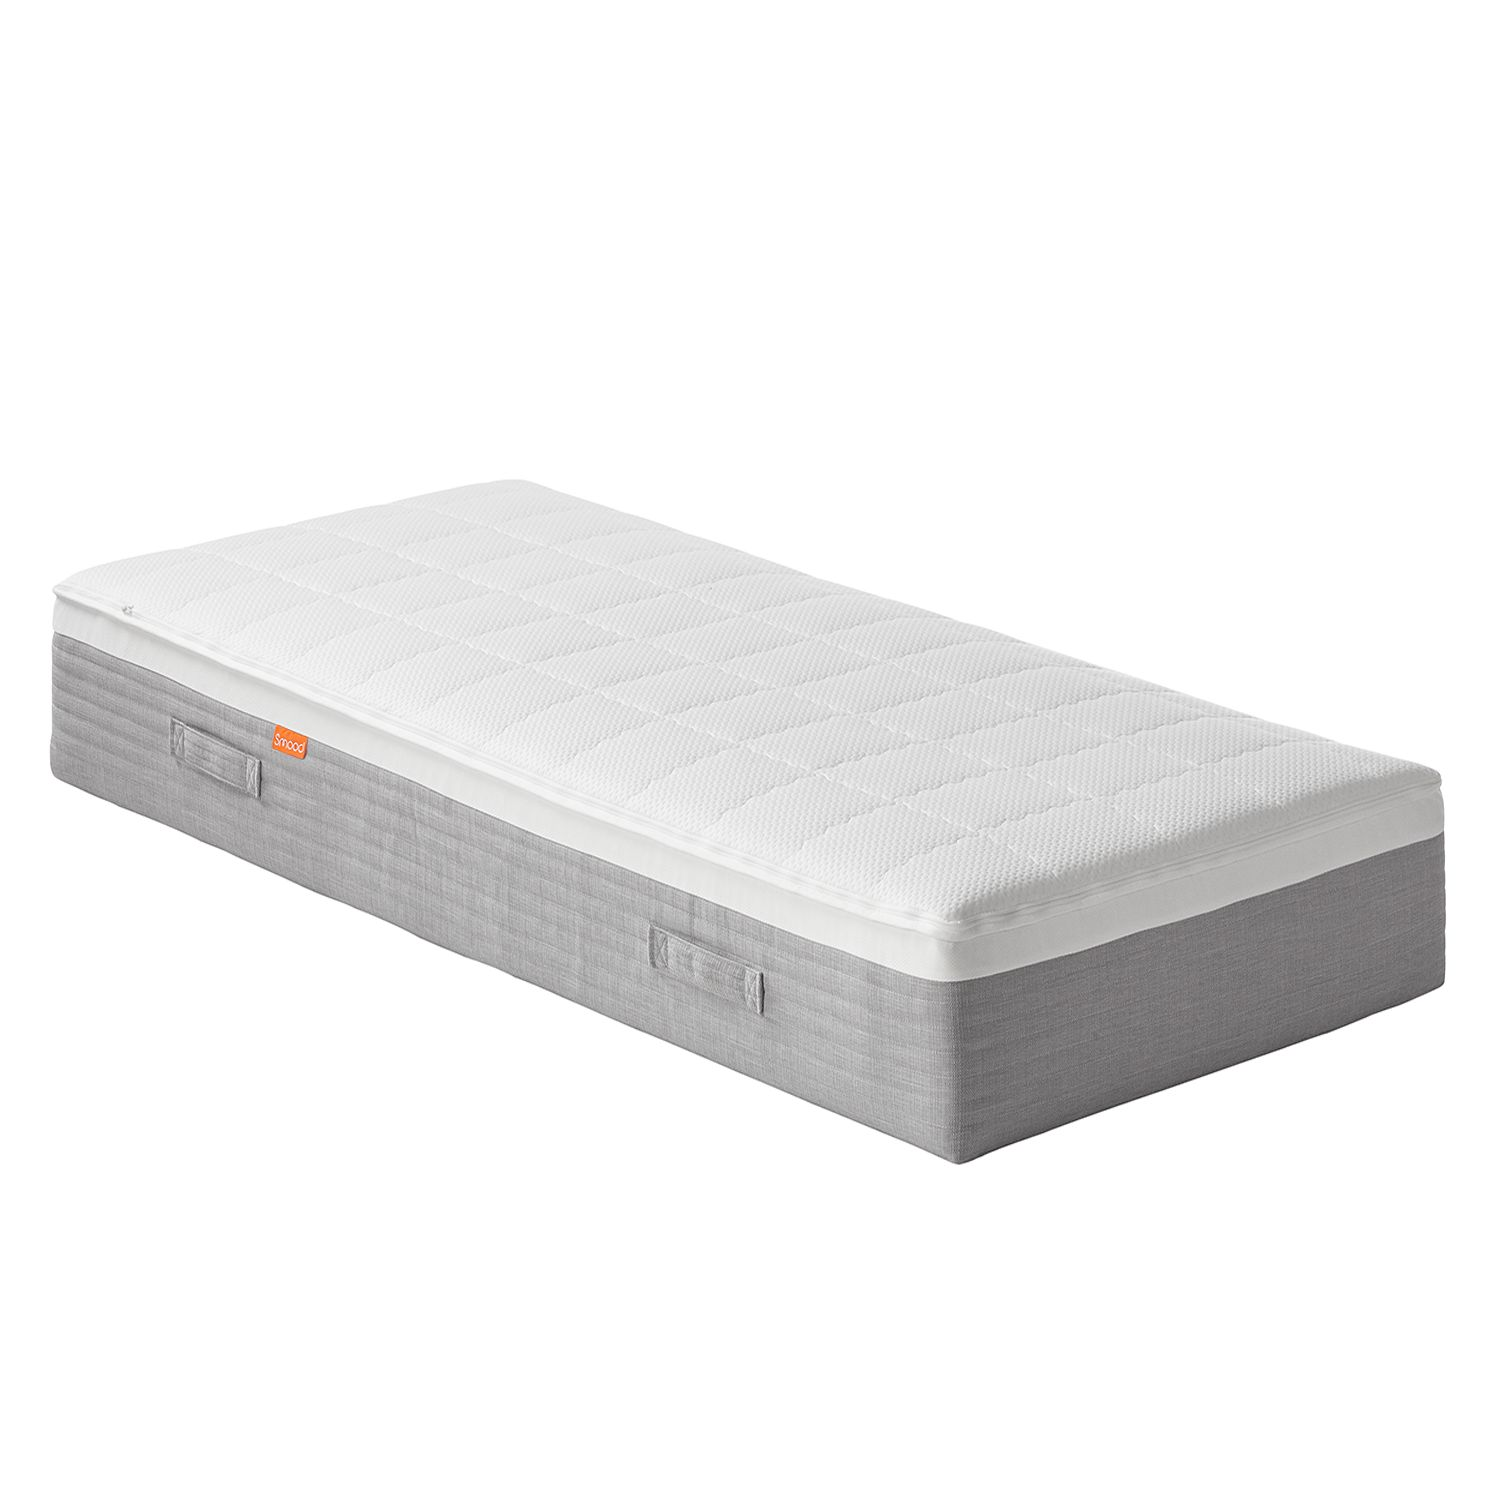 Matelas boxspring Smood Select - 90 x 200cm, Smood